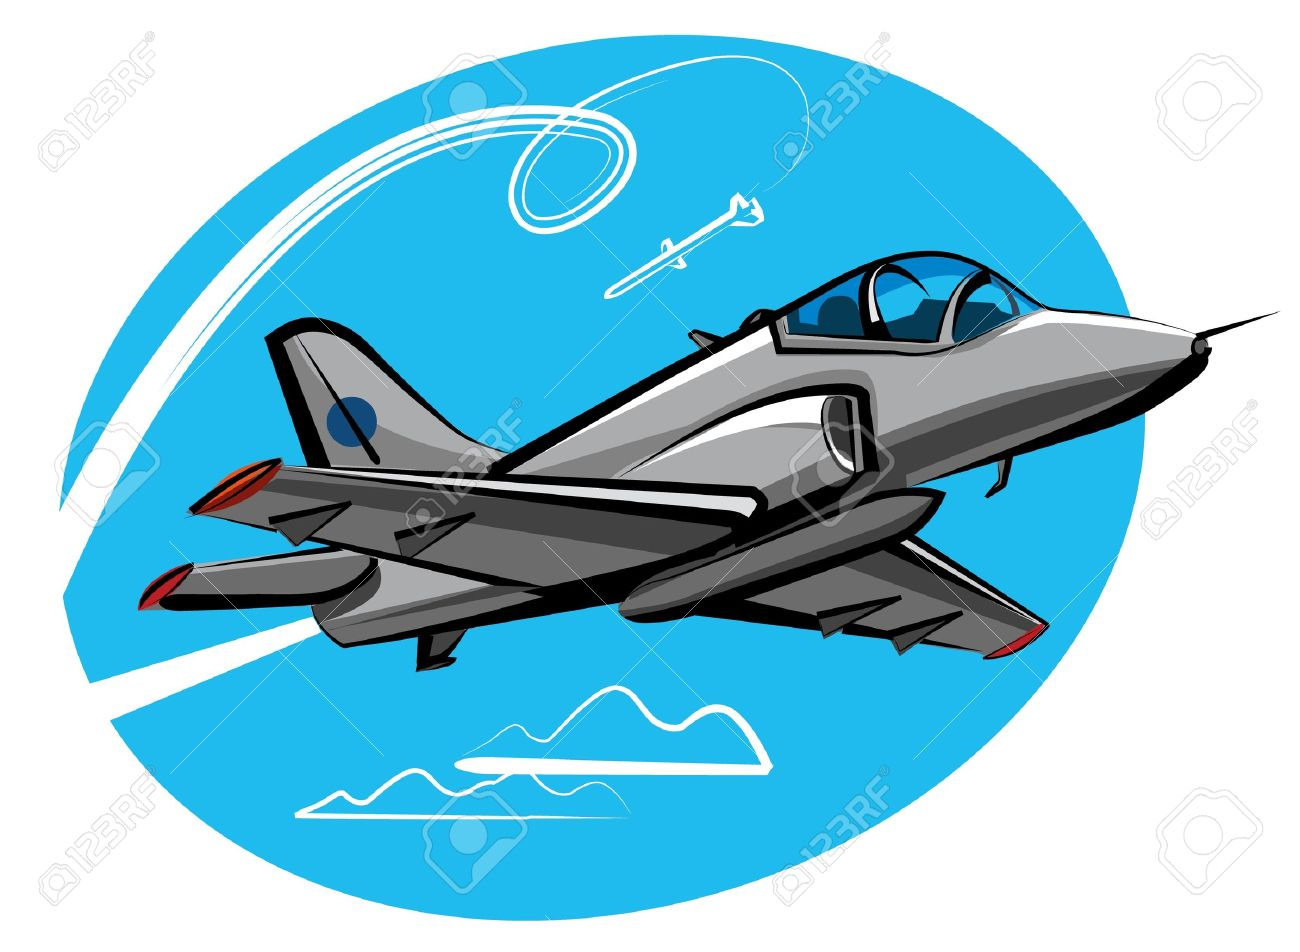 Jet Fighter Royalty Free Cliparts, Vectors, And Stock Illustration.